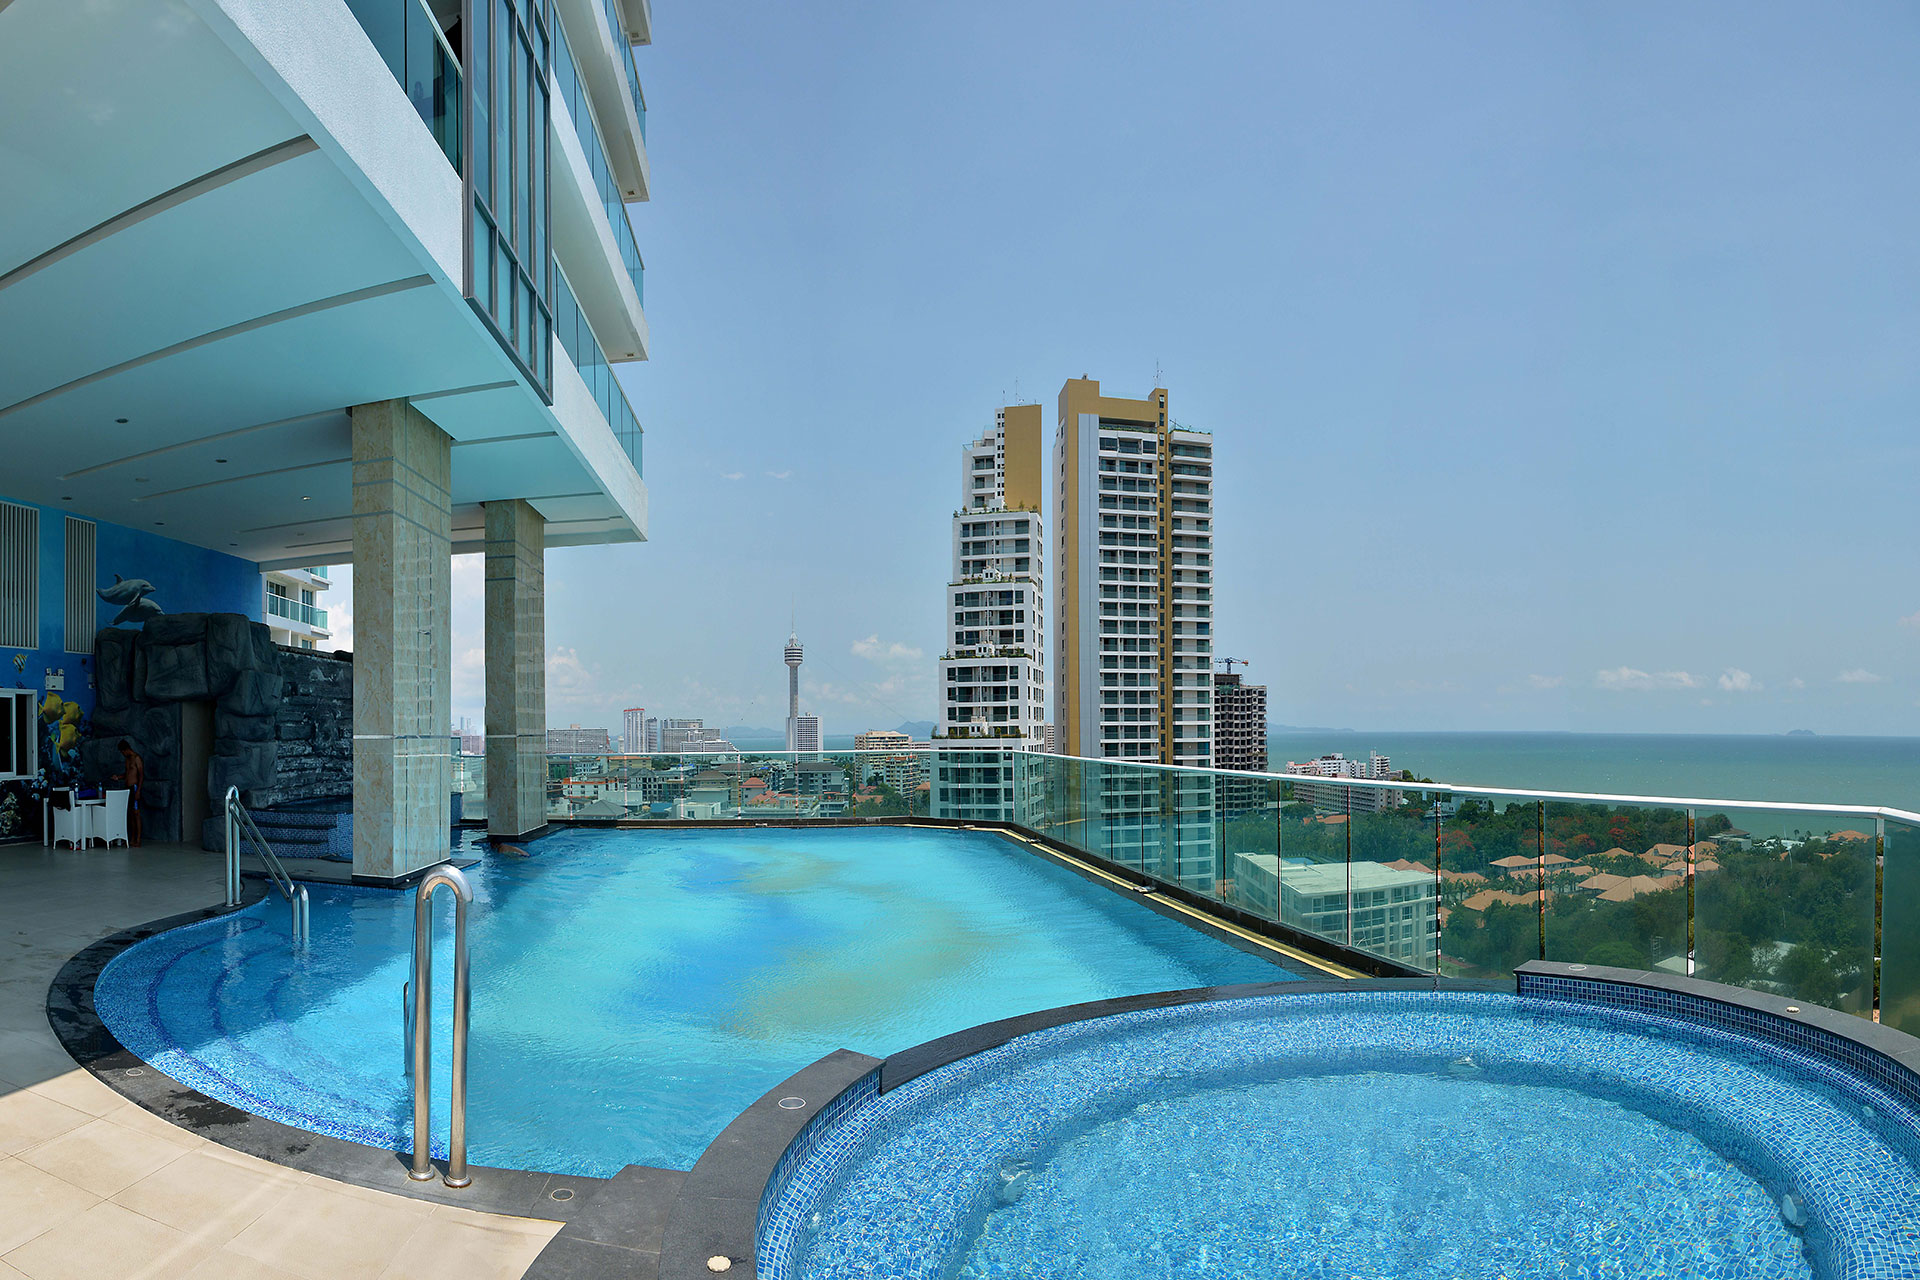 Apartment for rent in Cosy Beach View Studio 35 sq.m. Pattaya